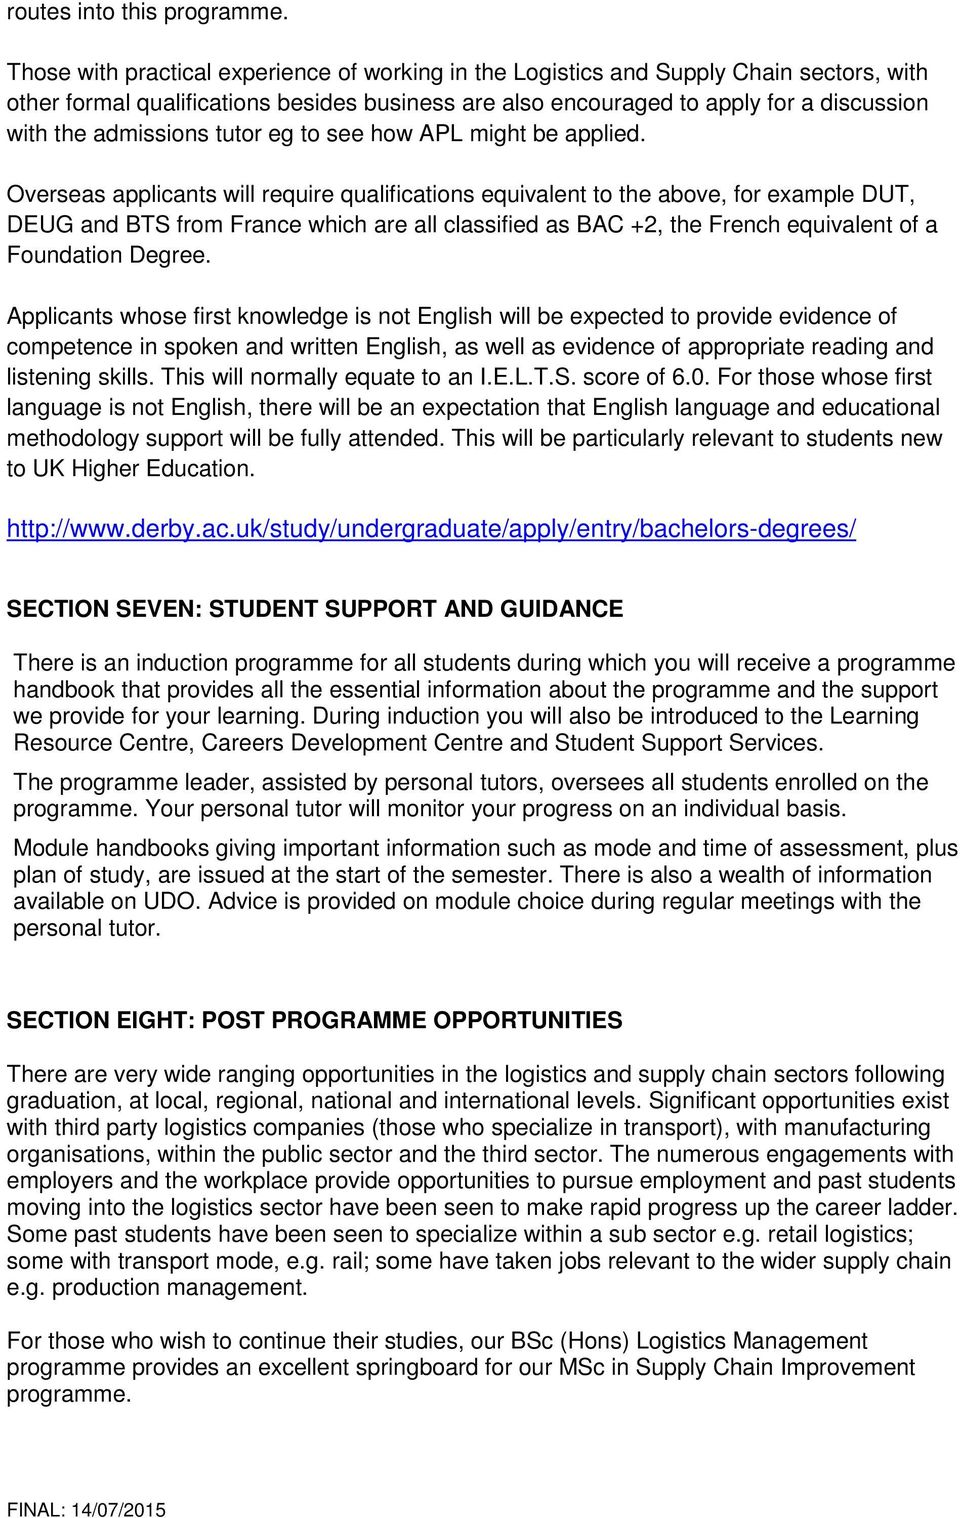 admissions tutor eg to see how APL might be applied.